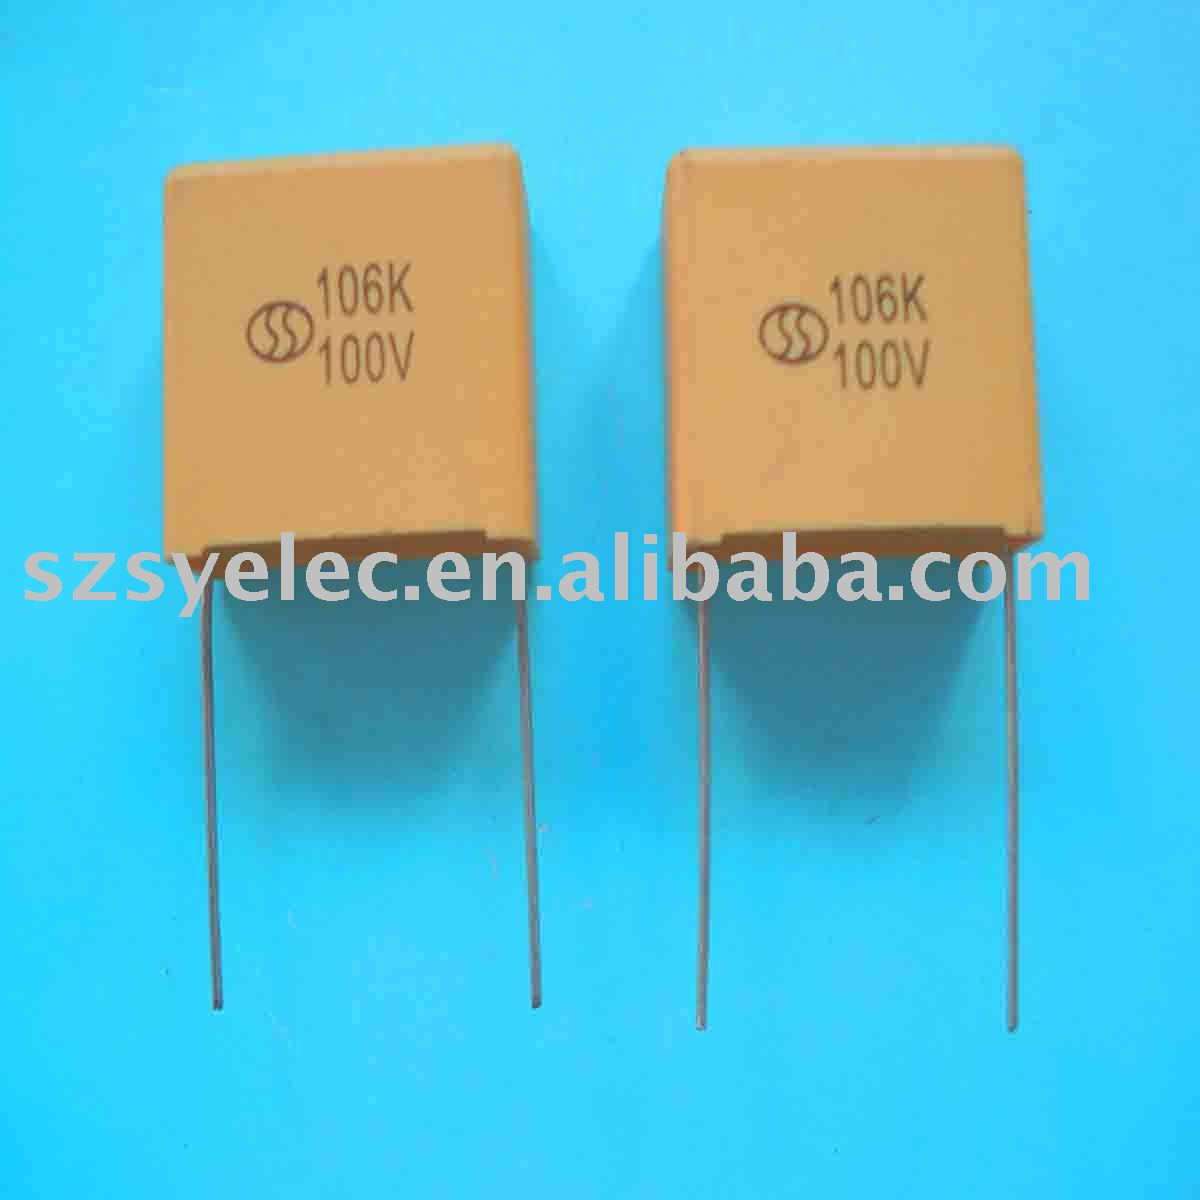 Metallized polyester film capacitor accessories box type CL2